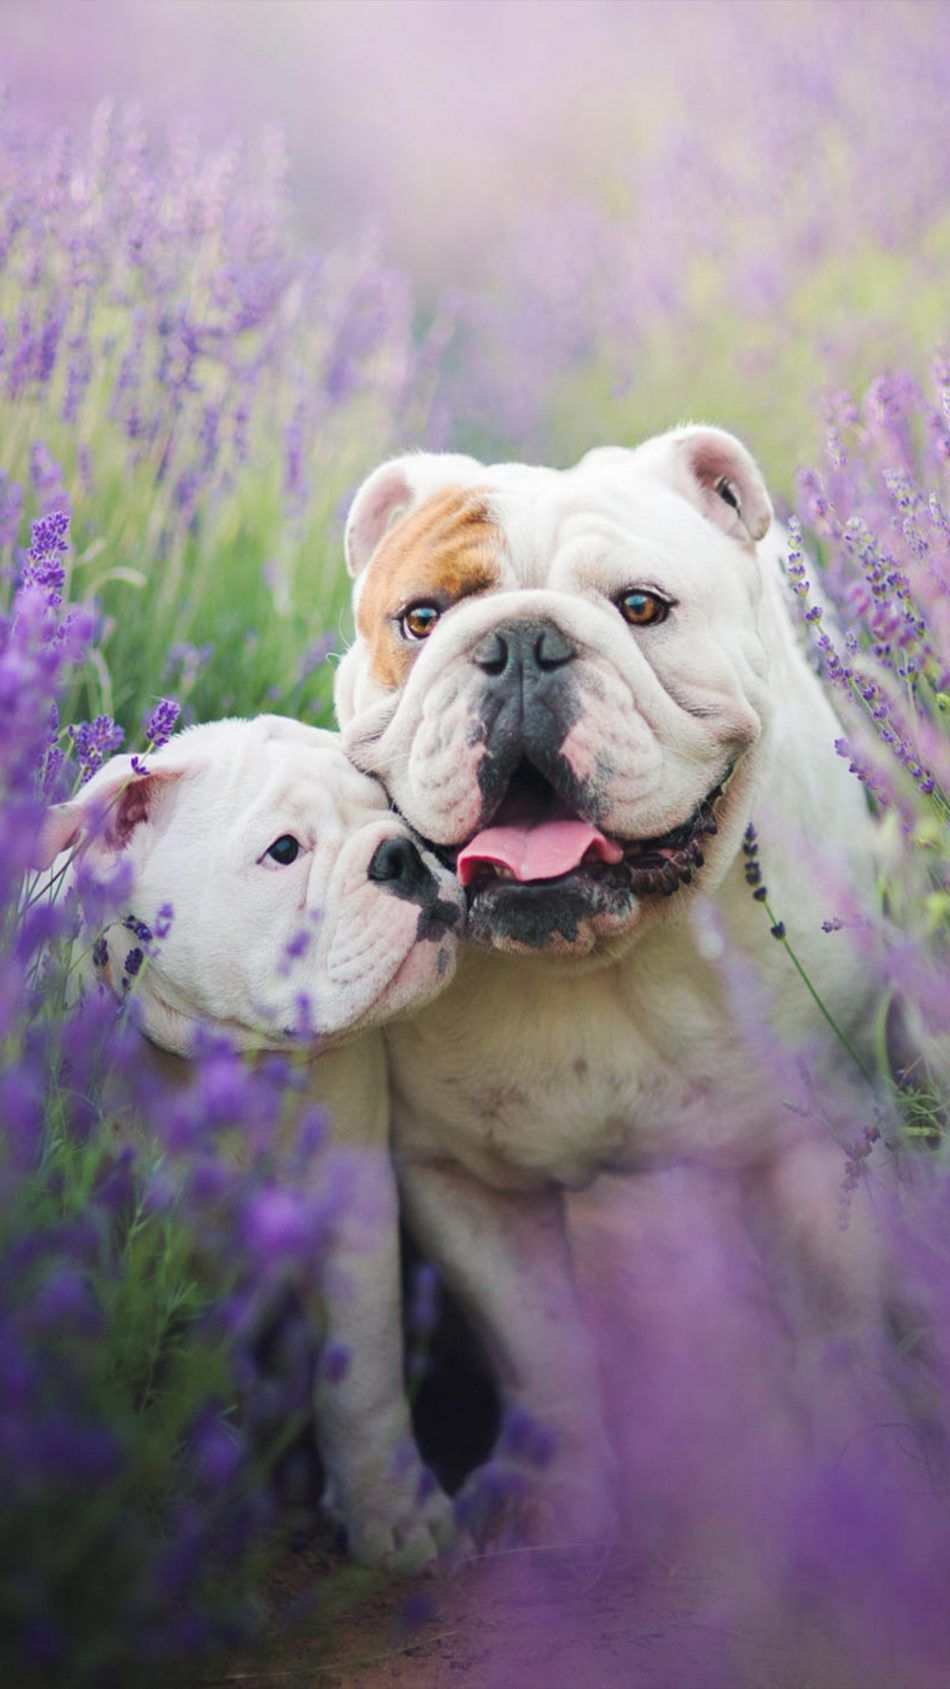 Bulldog With Puppy Puppies Dogs Cute Dogs Puppies